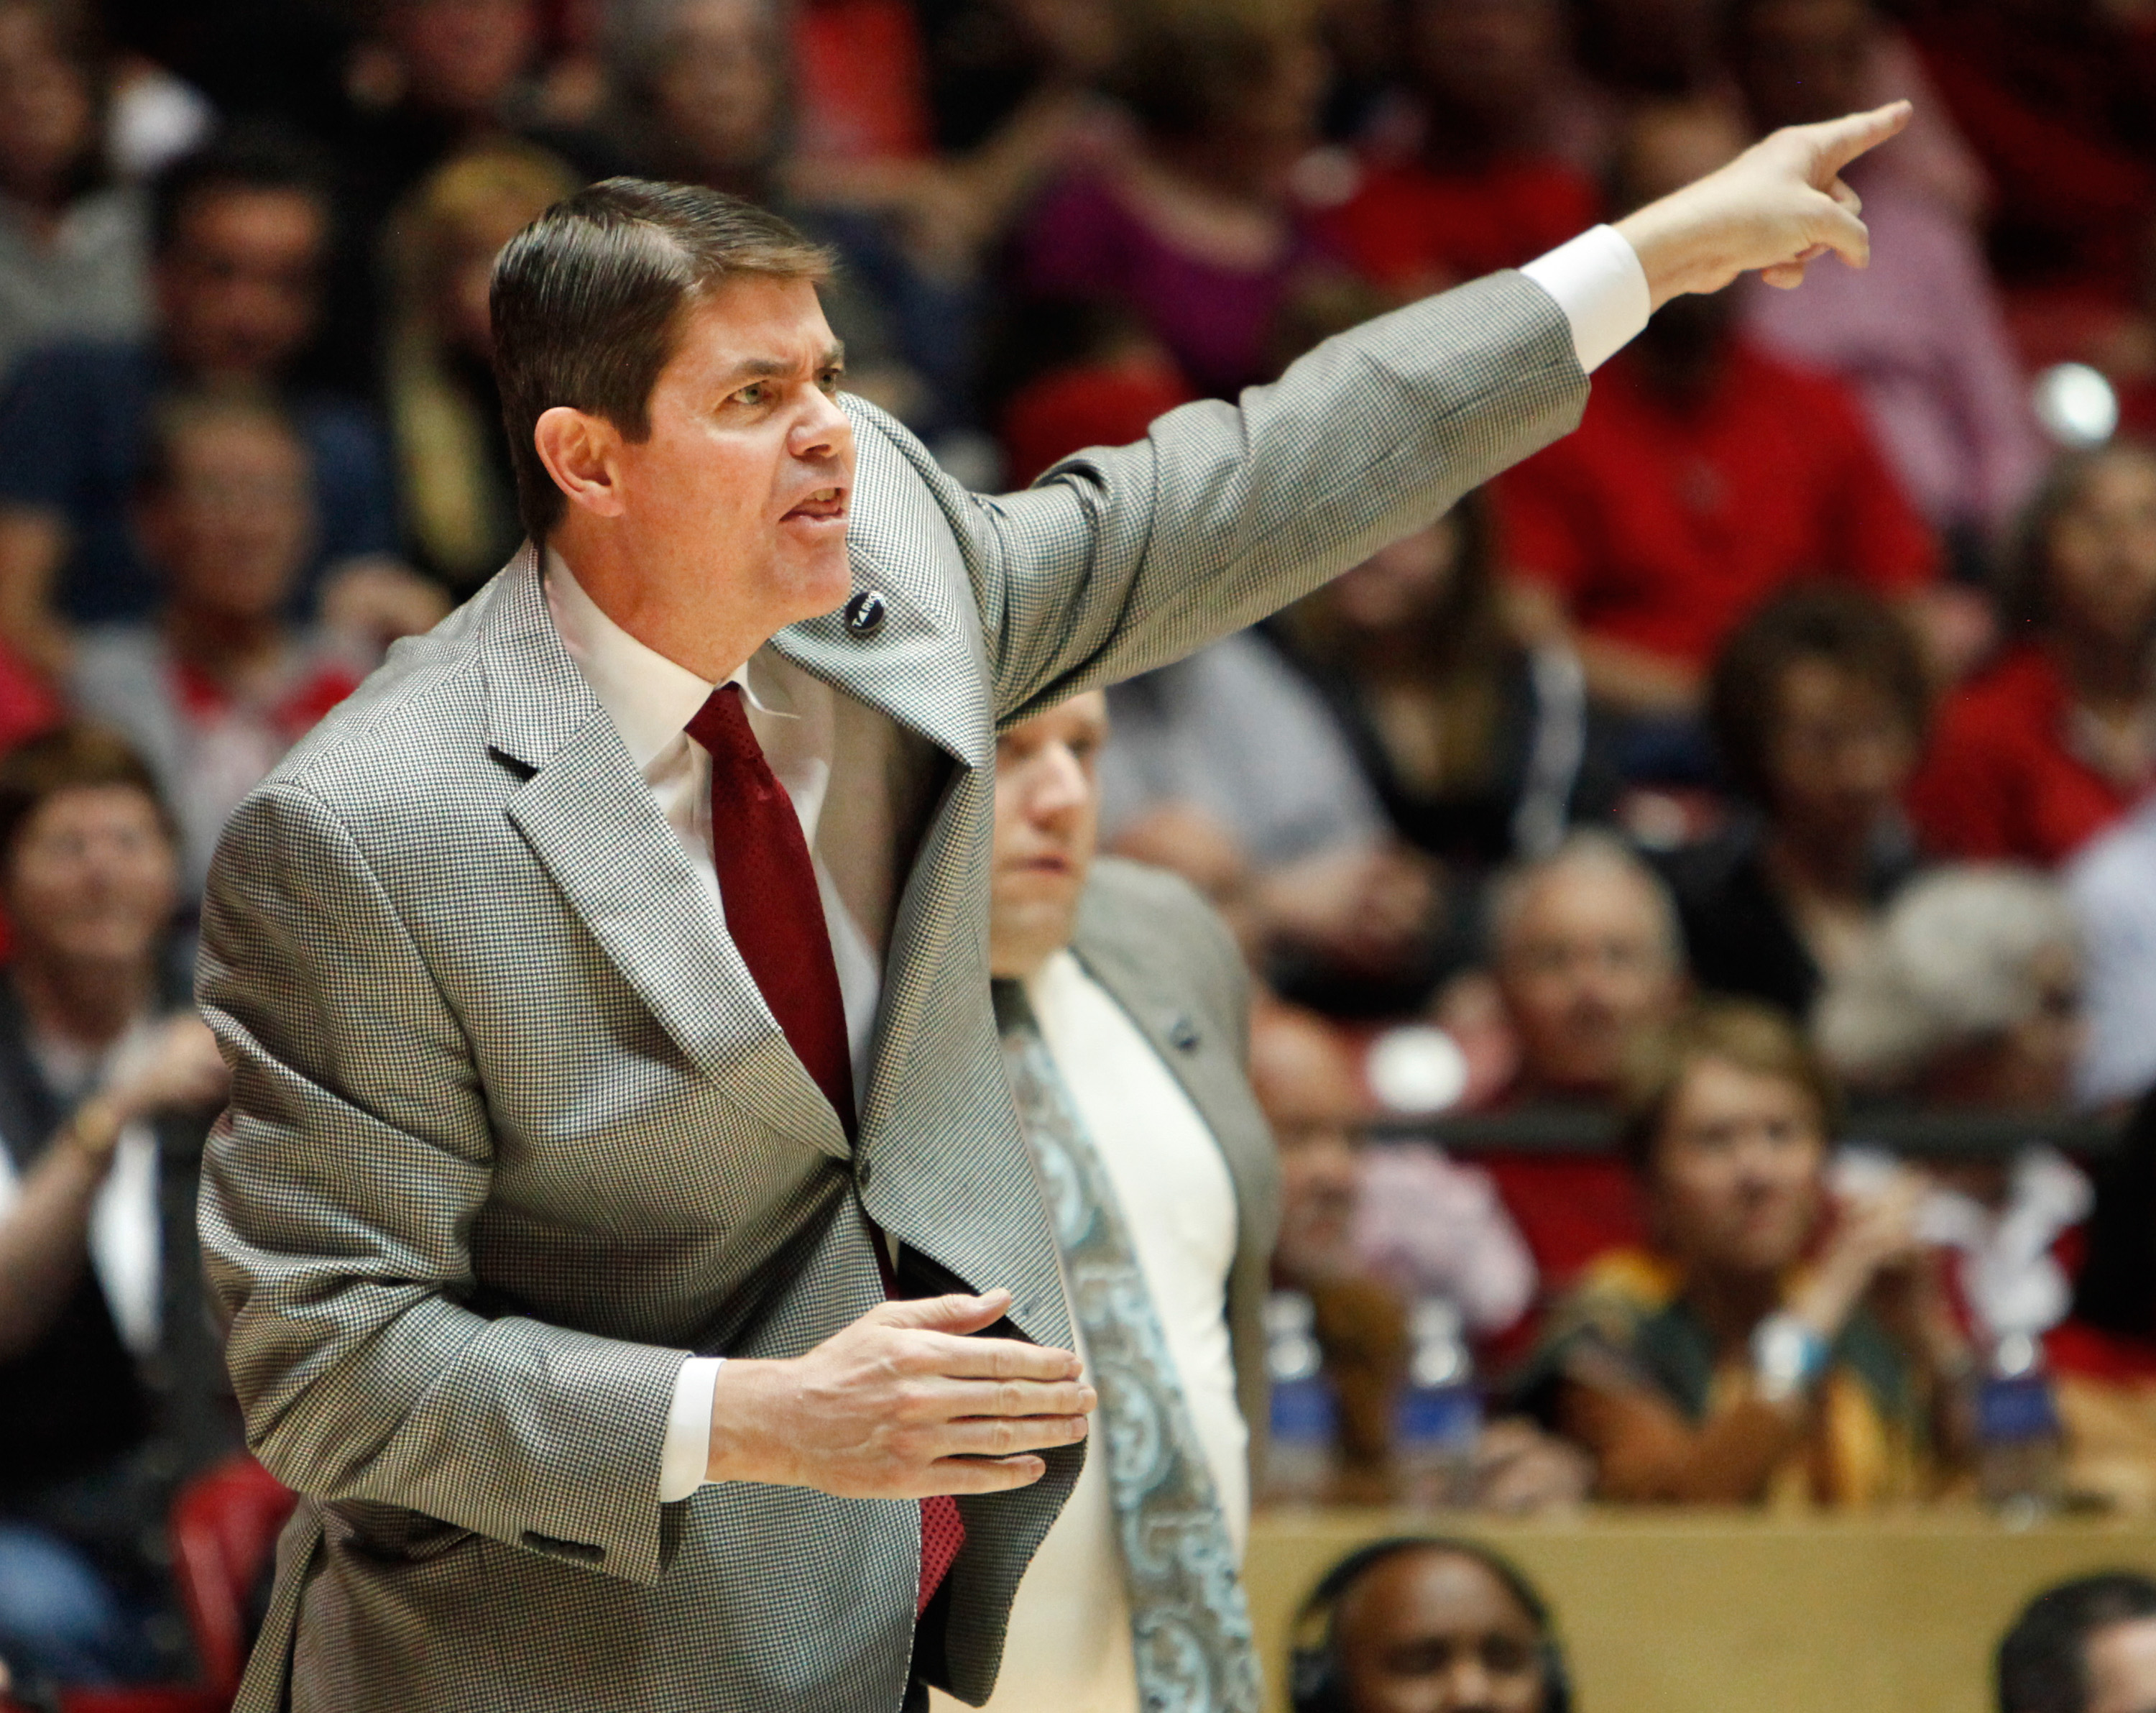 FILE - In this Feb. 21, 2015, file photo, UNLV coach Dave Rice calls a play during his team's NCAA college basketball game against New Mexico in Albuquerque, N.M. Rice has resigned in the middle of his fifth season after the struggling Runnin' Rebels open